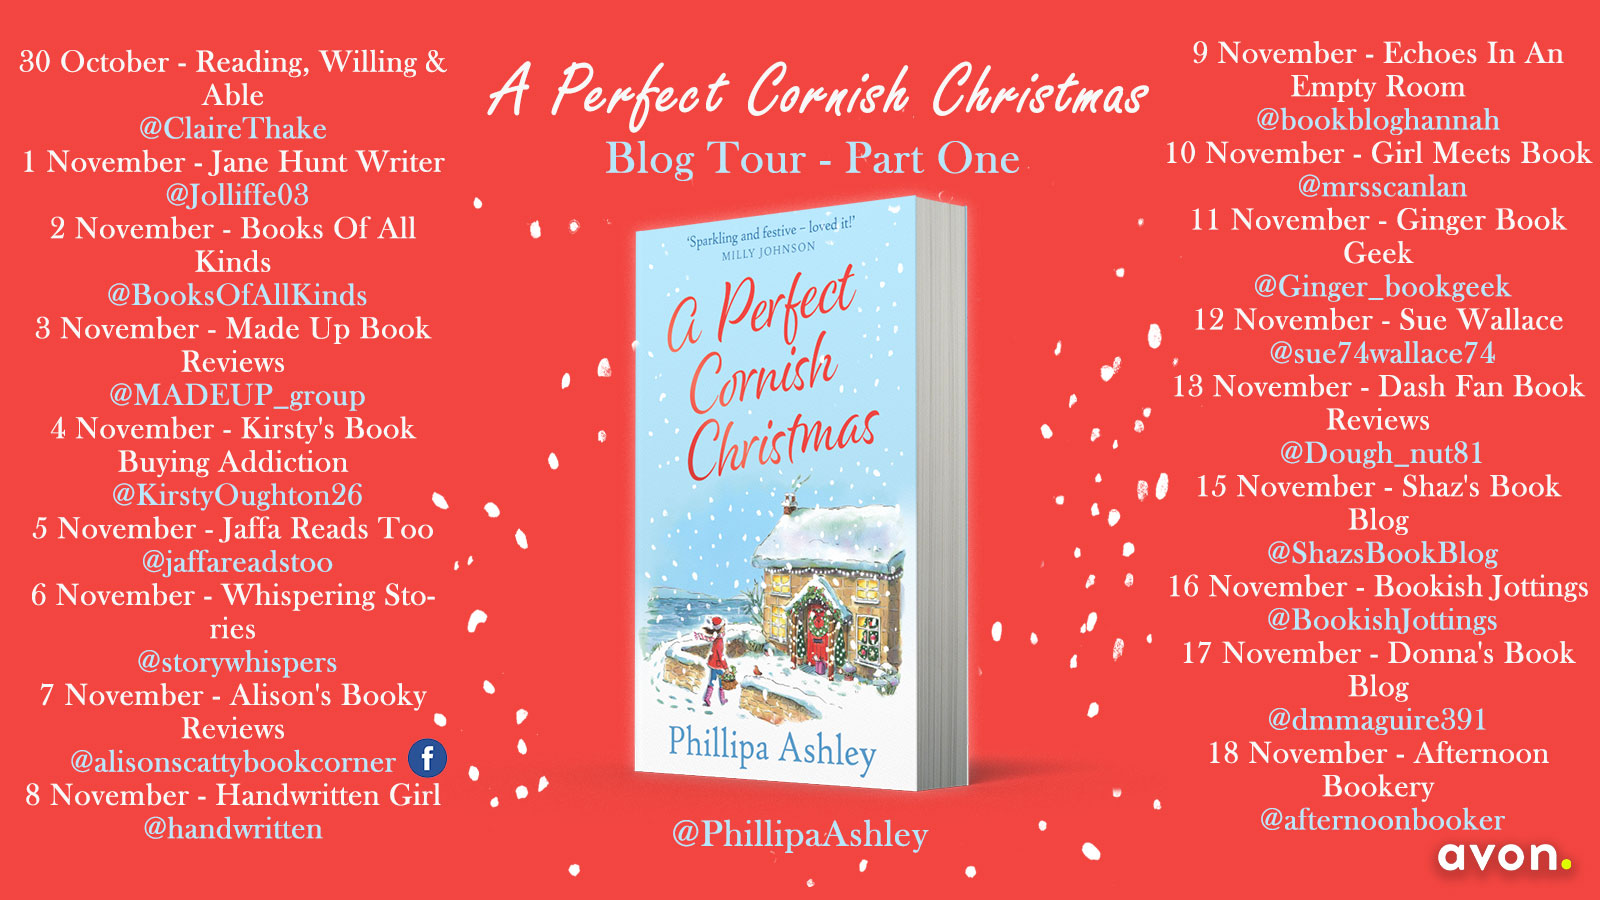 A Perfect Cornish Christmas Blog Tour